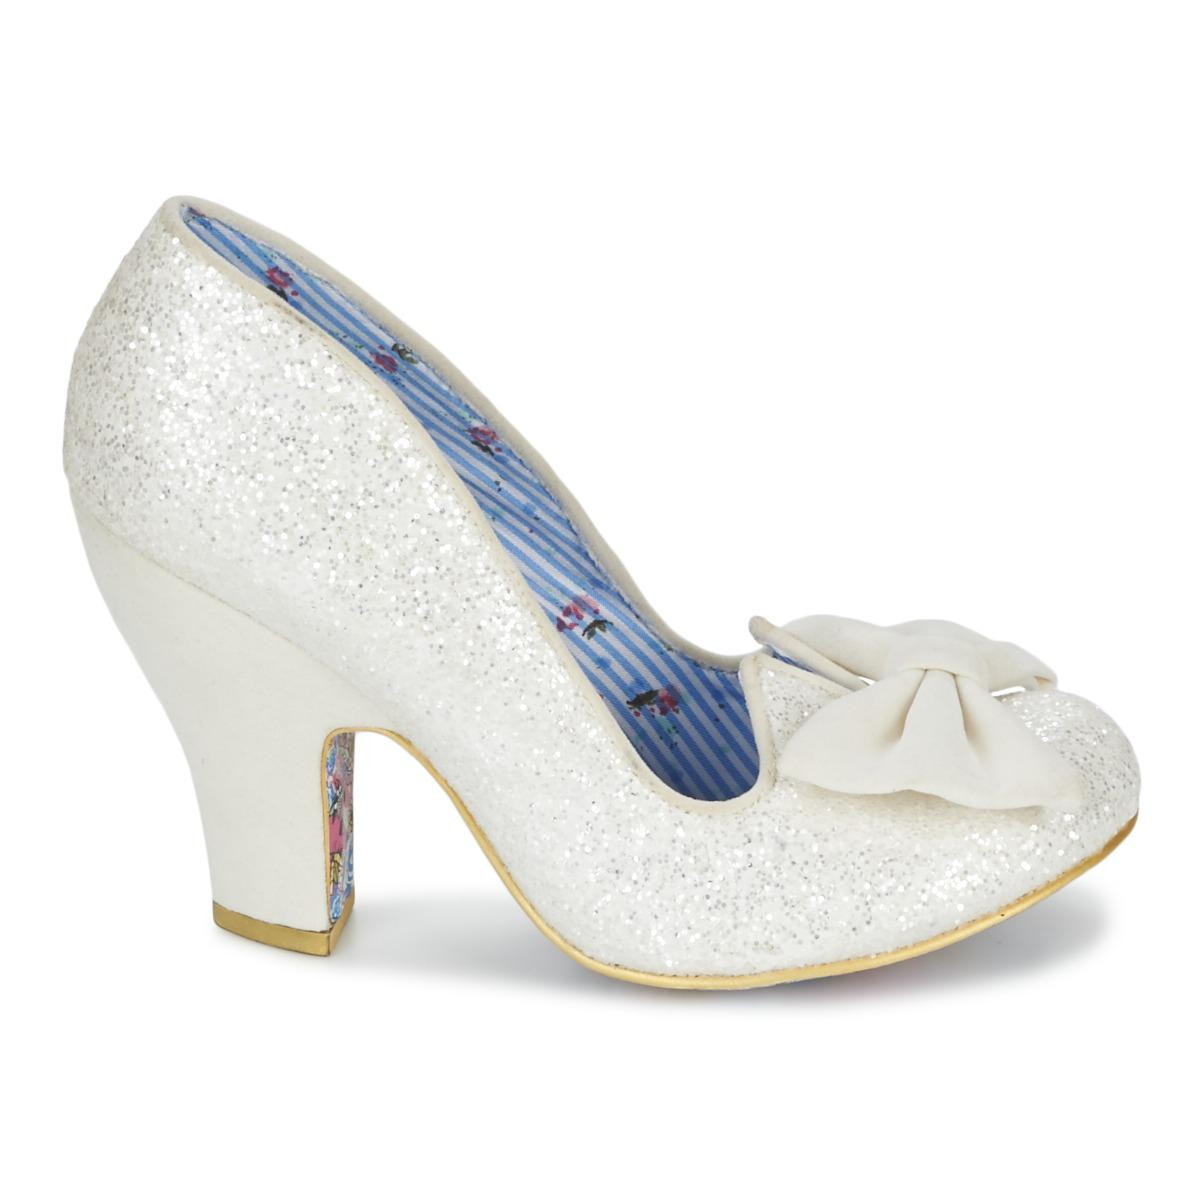 7bc8f6ccc989 Irregular Choice - Nick Of Time Women s Court Shoes In White - Lyst. View  fullscreen